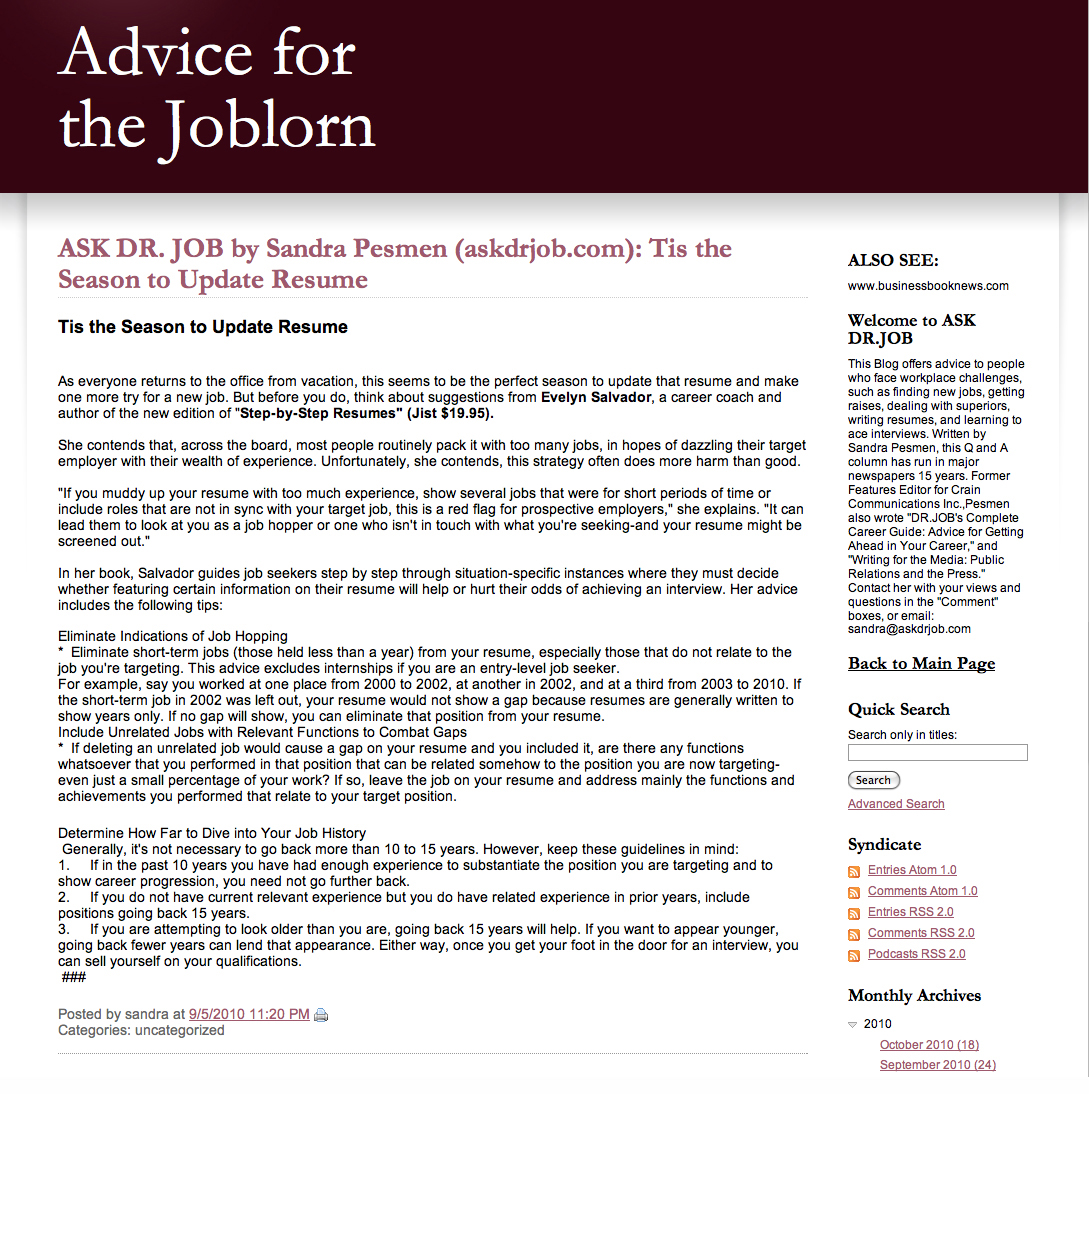 advice for joblorn - tis the season to update resume.jpg